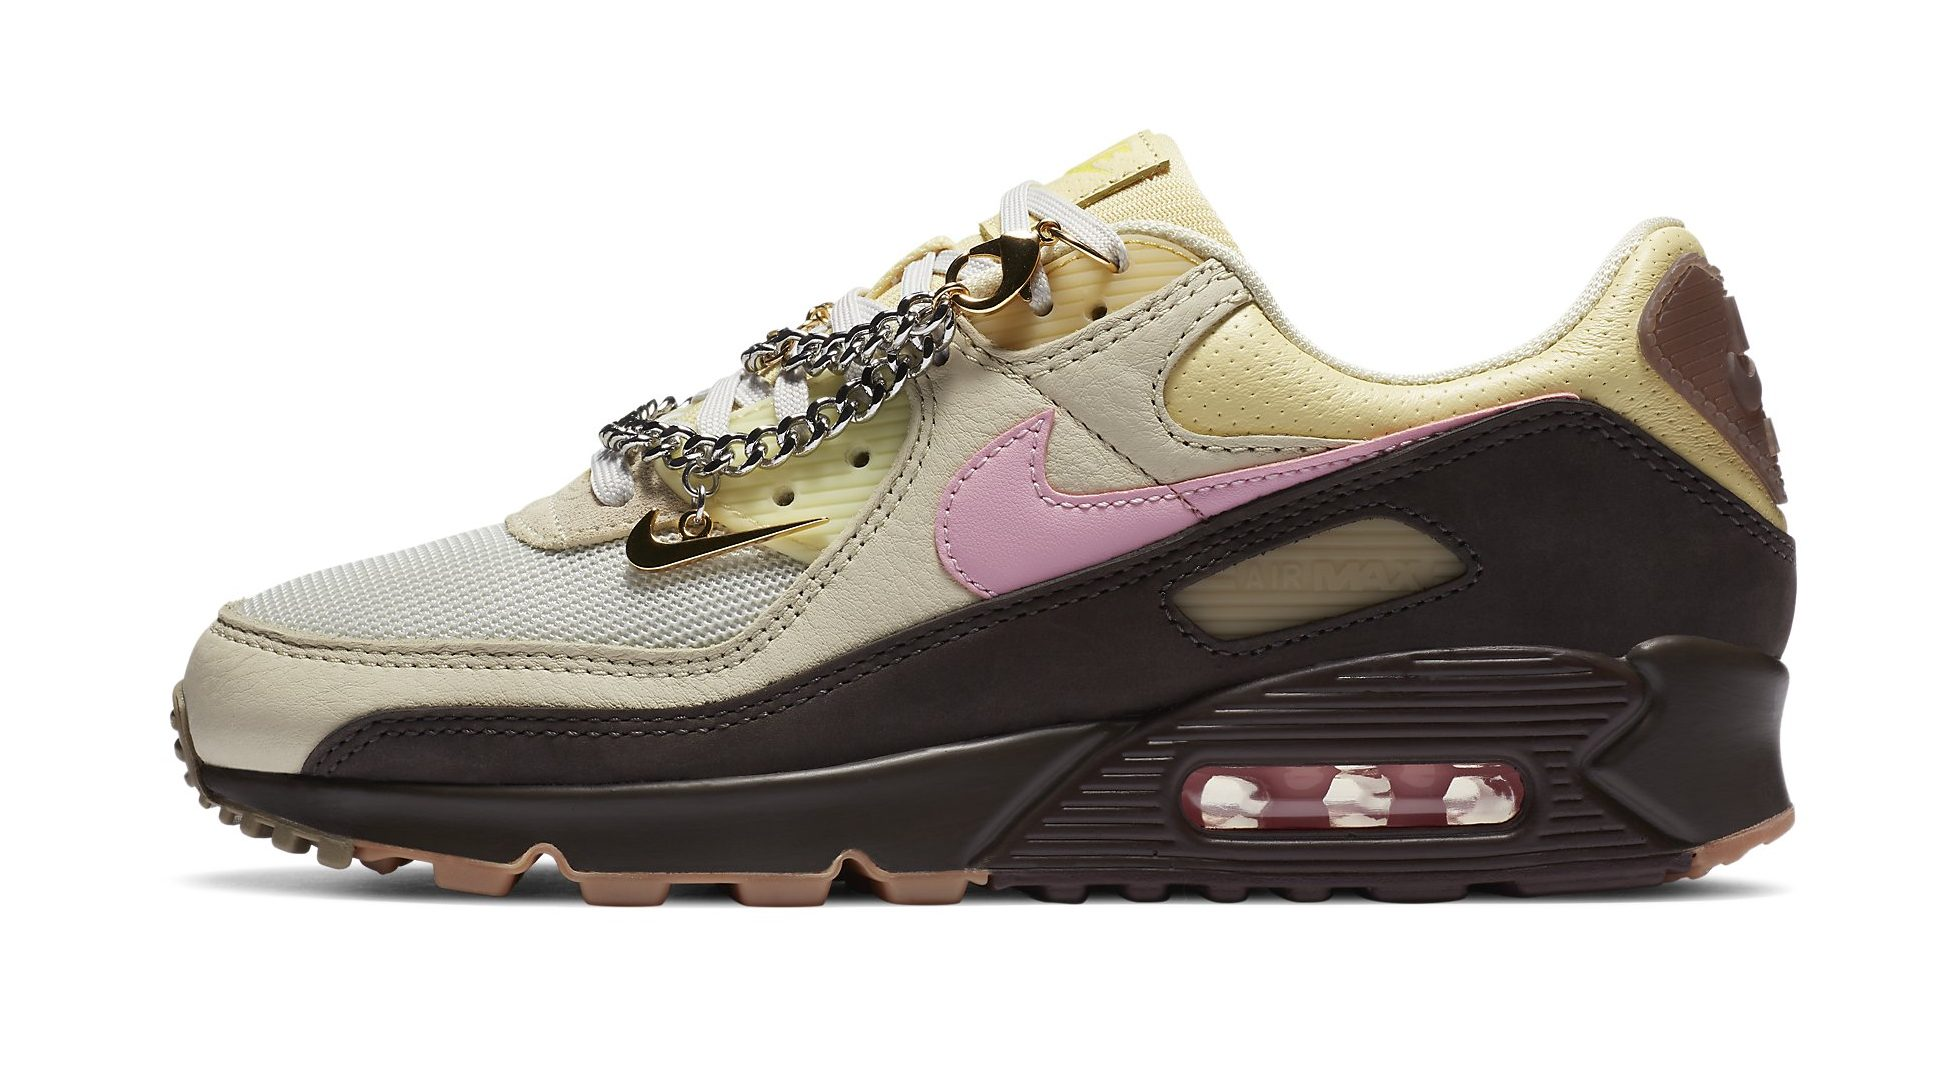 Uluru alto Señor  Nike Air Max 90 & Air Max 95 With Detachable Jewelry: Release Date –  Footwear News